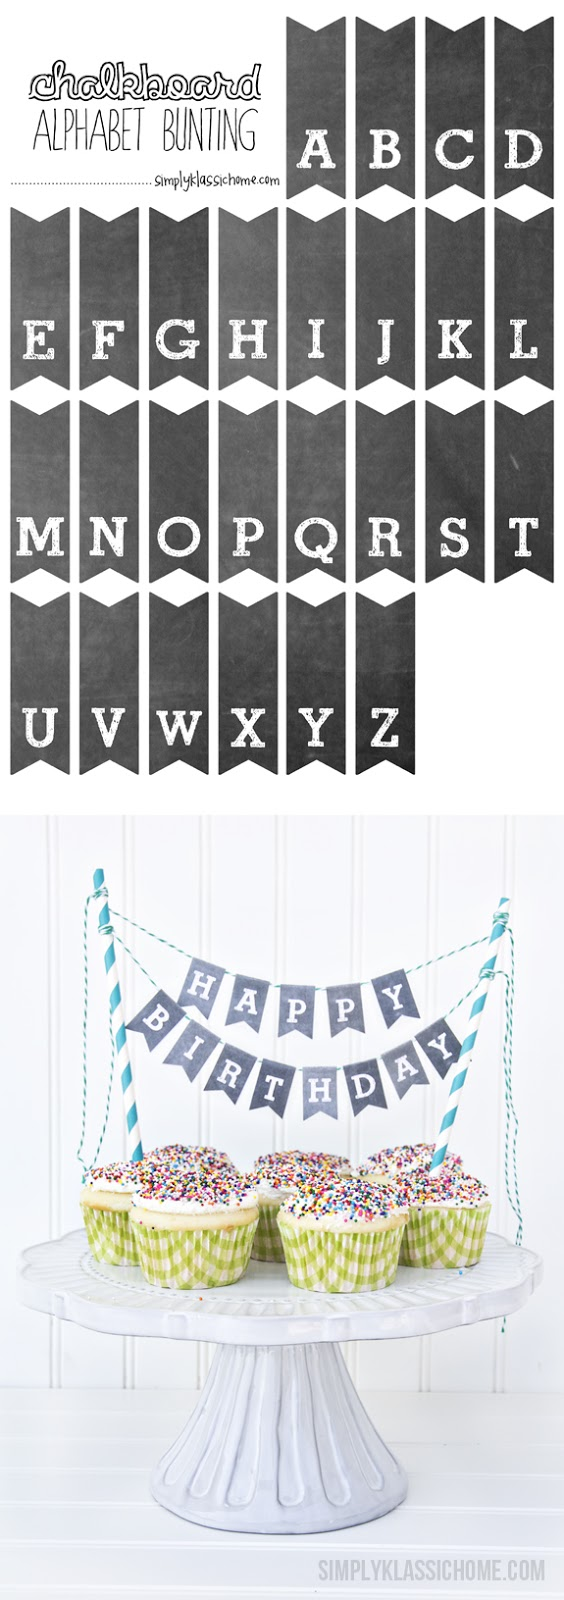 Printable Chalkboard Letters Cake Bunting Yellow Bliss Road